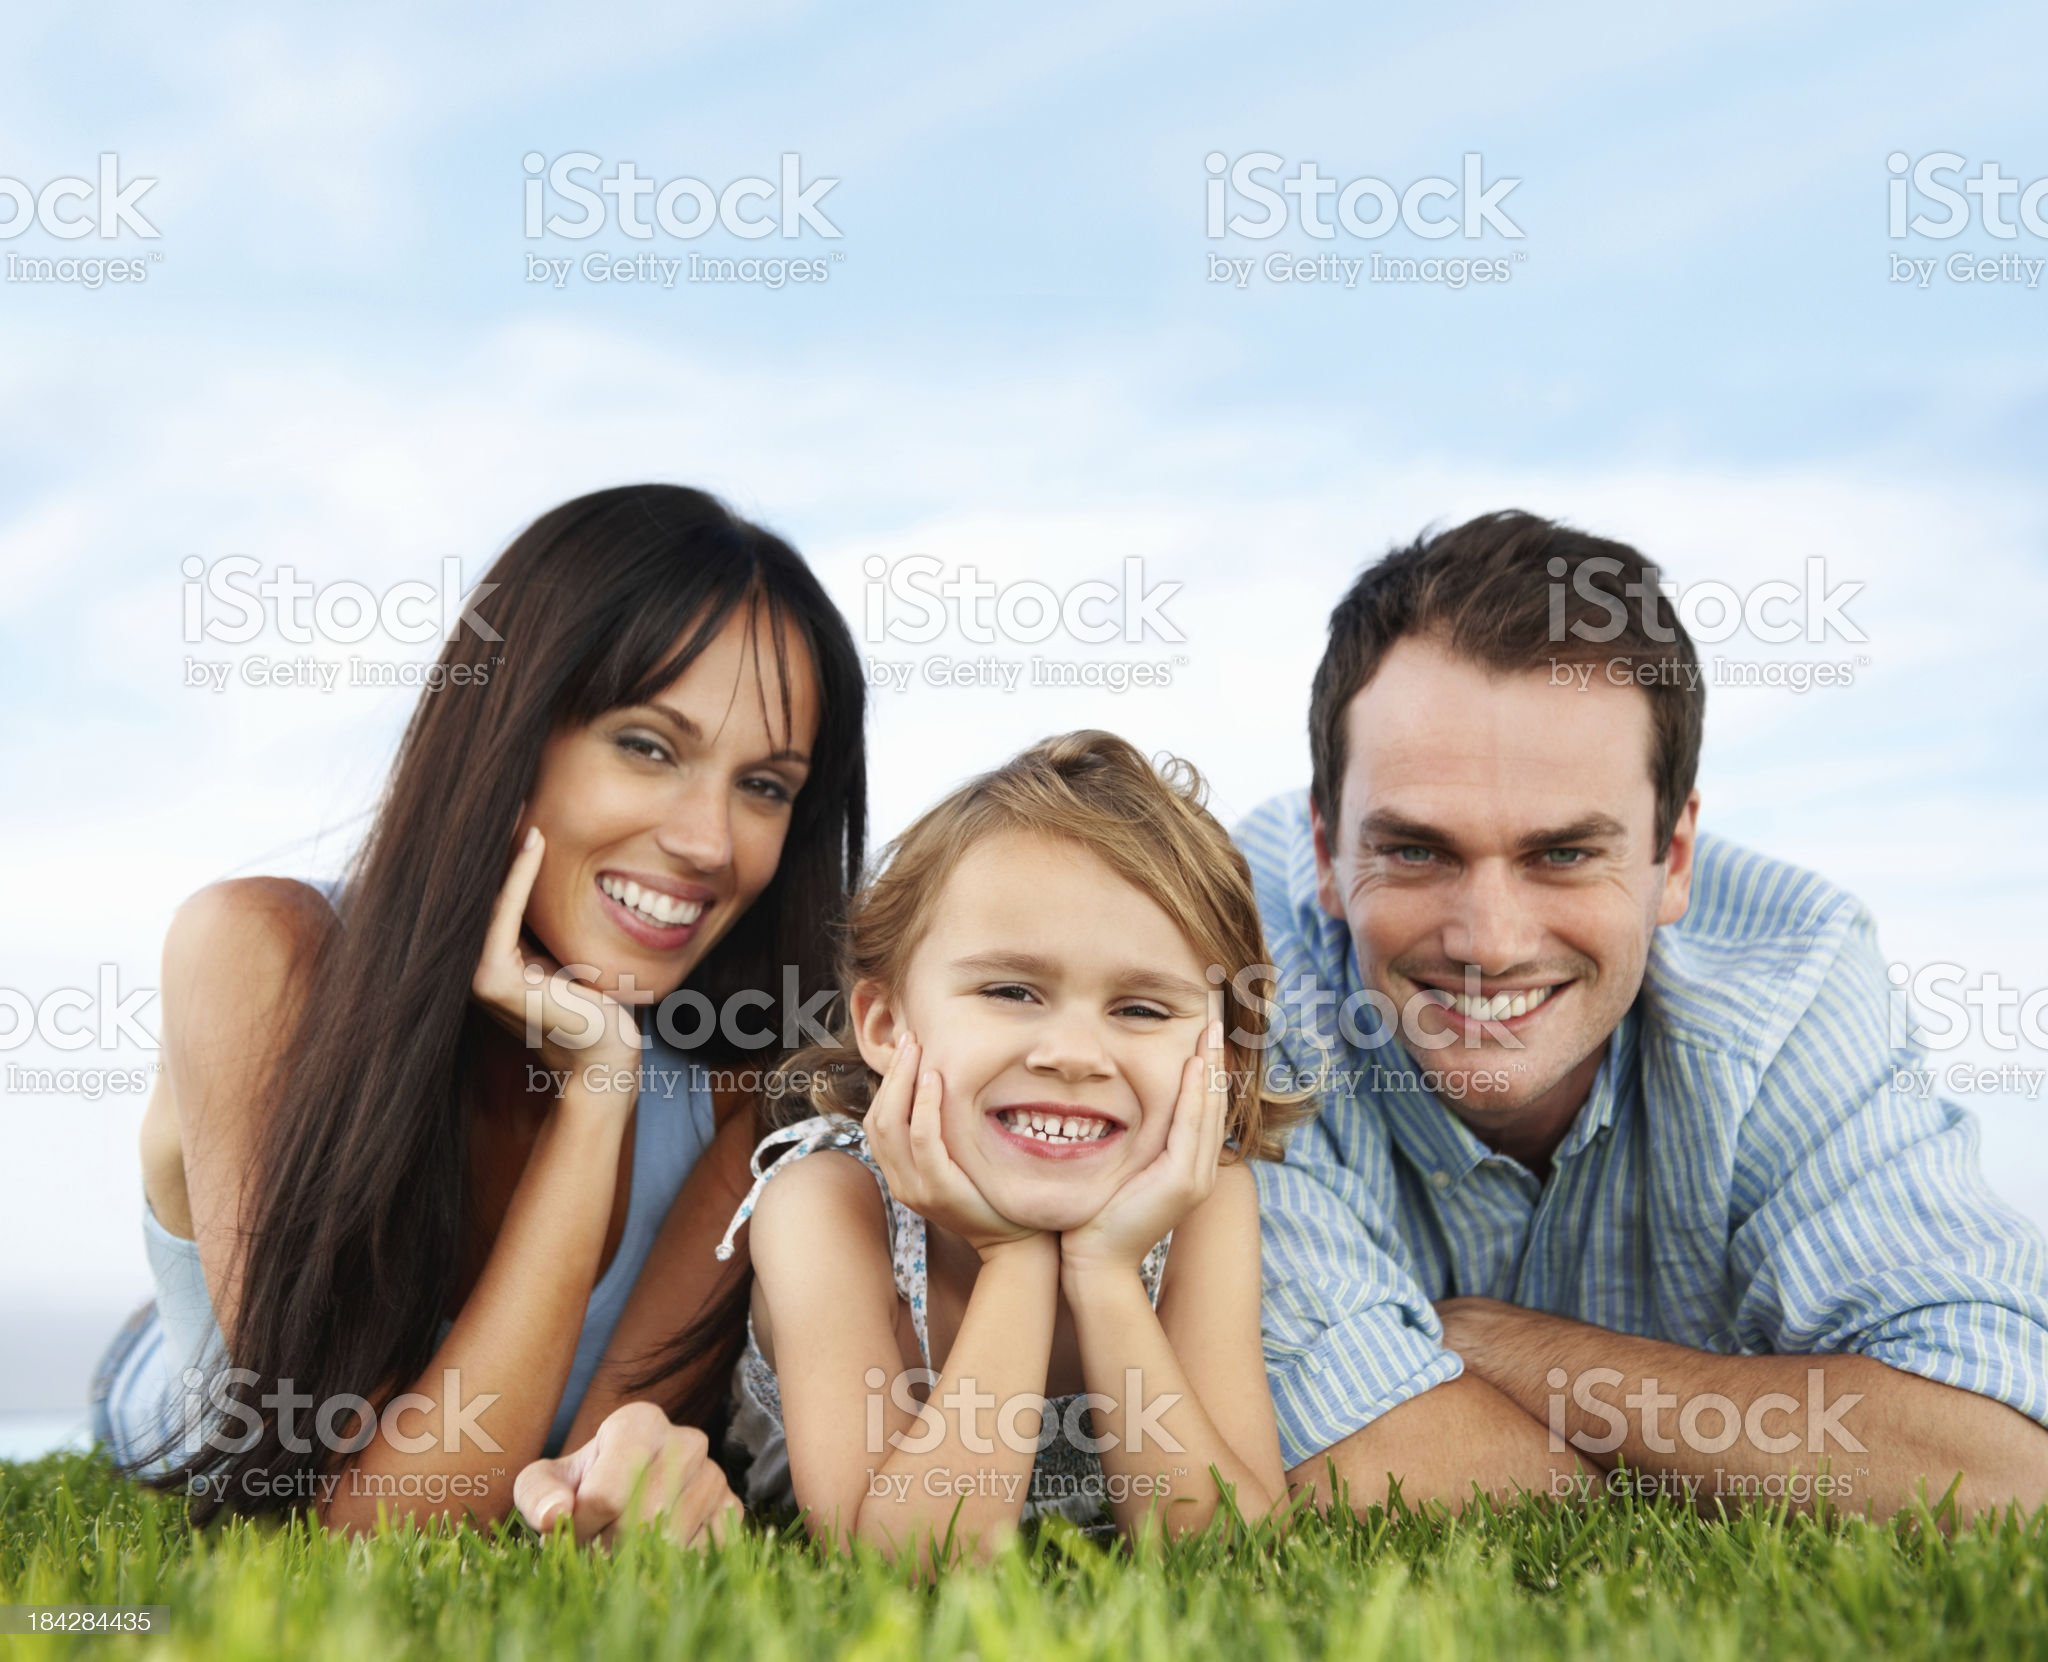 Smiling girl with her parents royalty-free stock photo